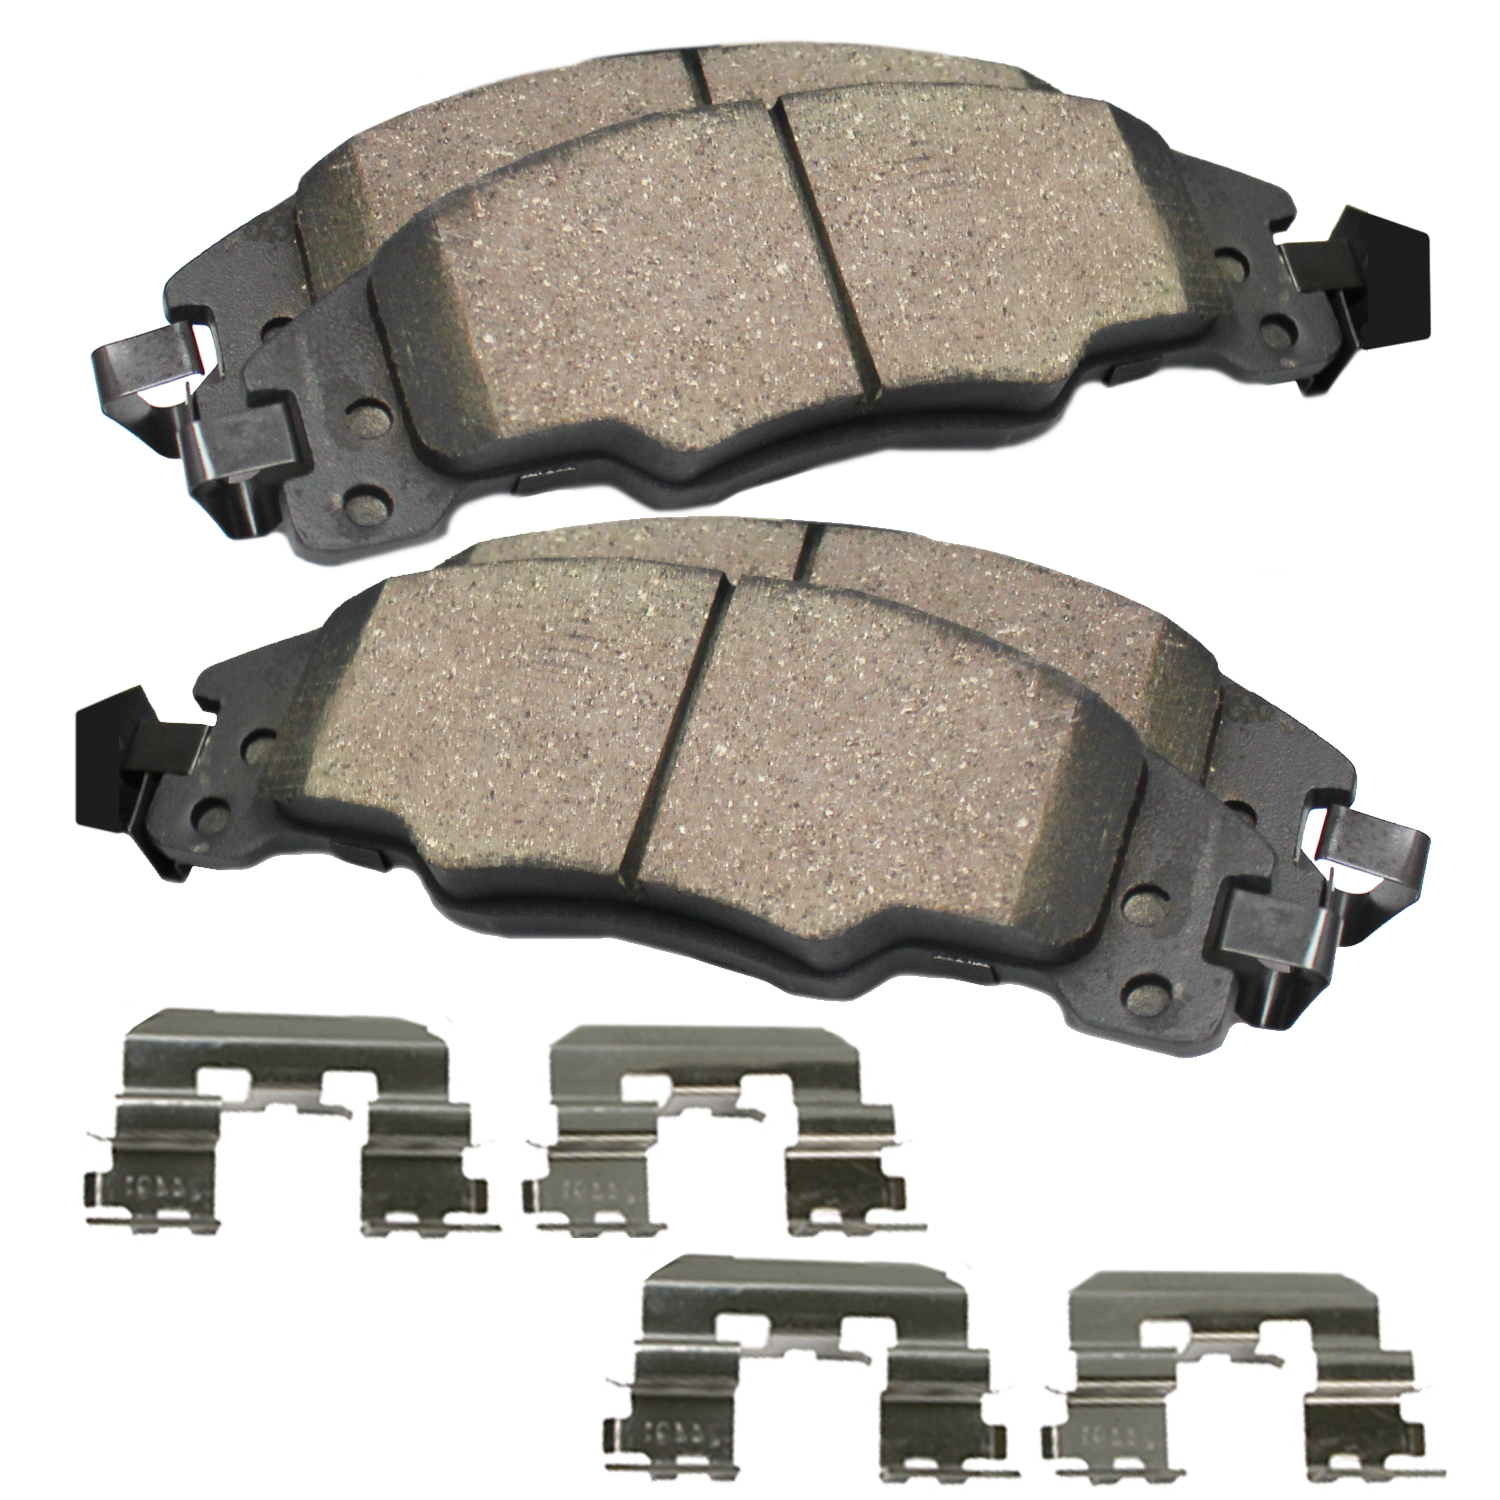 Rear Ceramic Brake Pads w/Hardware Kit for LeSabre Park Avenue Regal Riviera Allante Deville Eldorado Seville Lumina Monte Carlo Aurora Cutlass Bonneville Grand Prix SC SL SW1 SW2